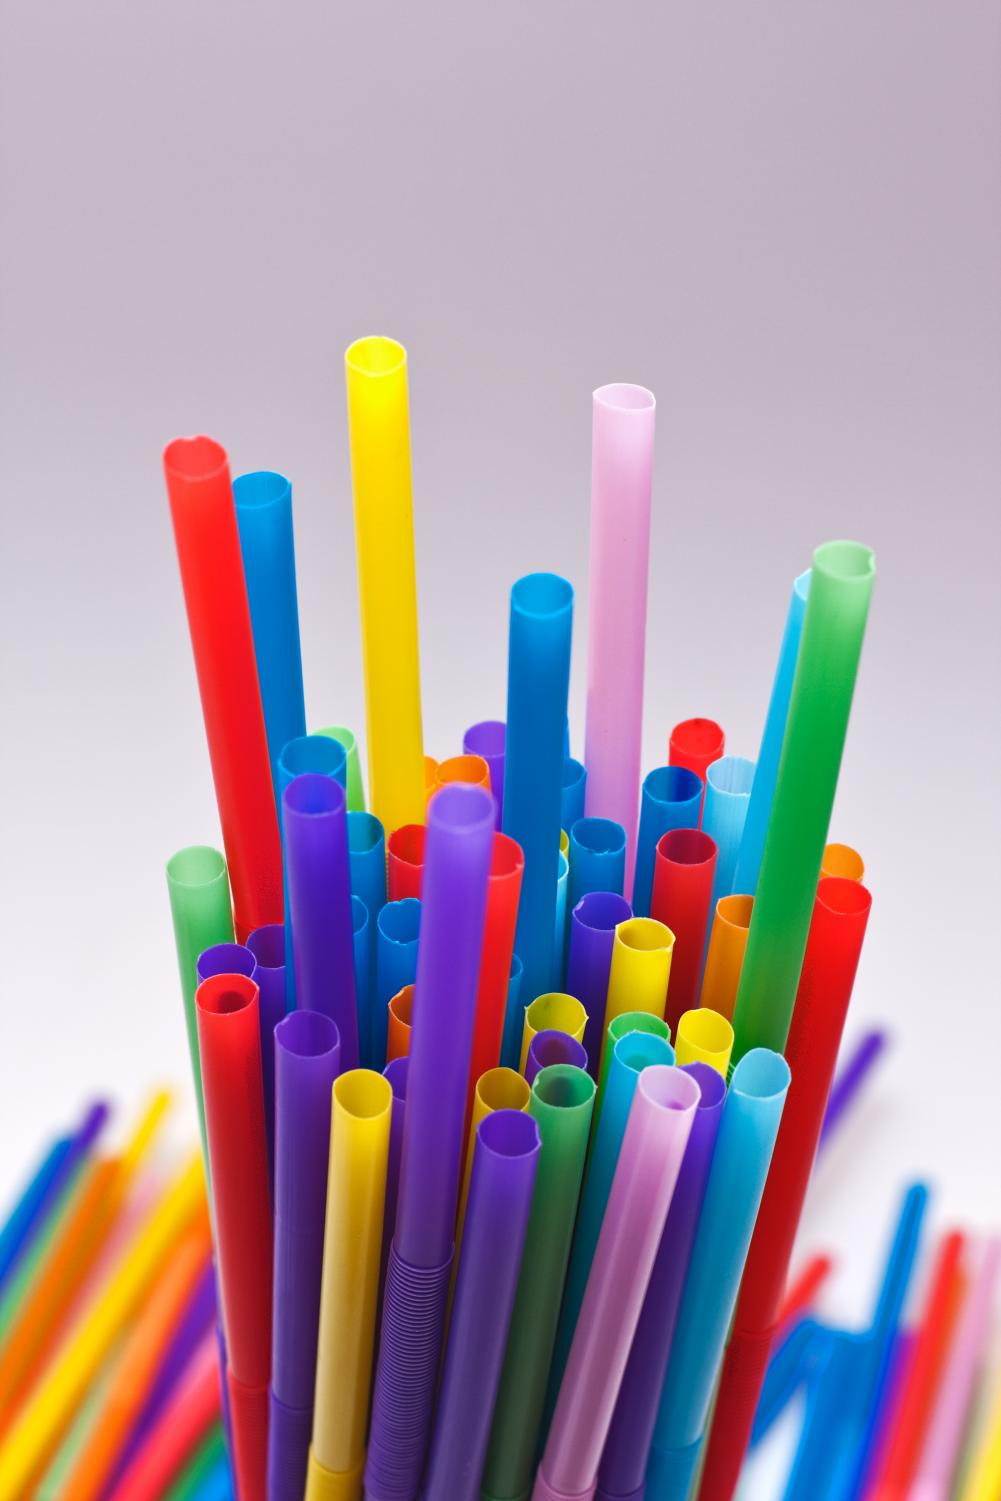 Lots of colorful plastic straws with flexible bodies stuck together in a glass. https://creativecommons.org/licenses/by/2.0/deed.en